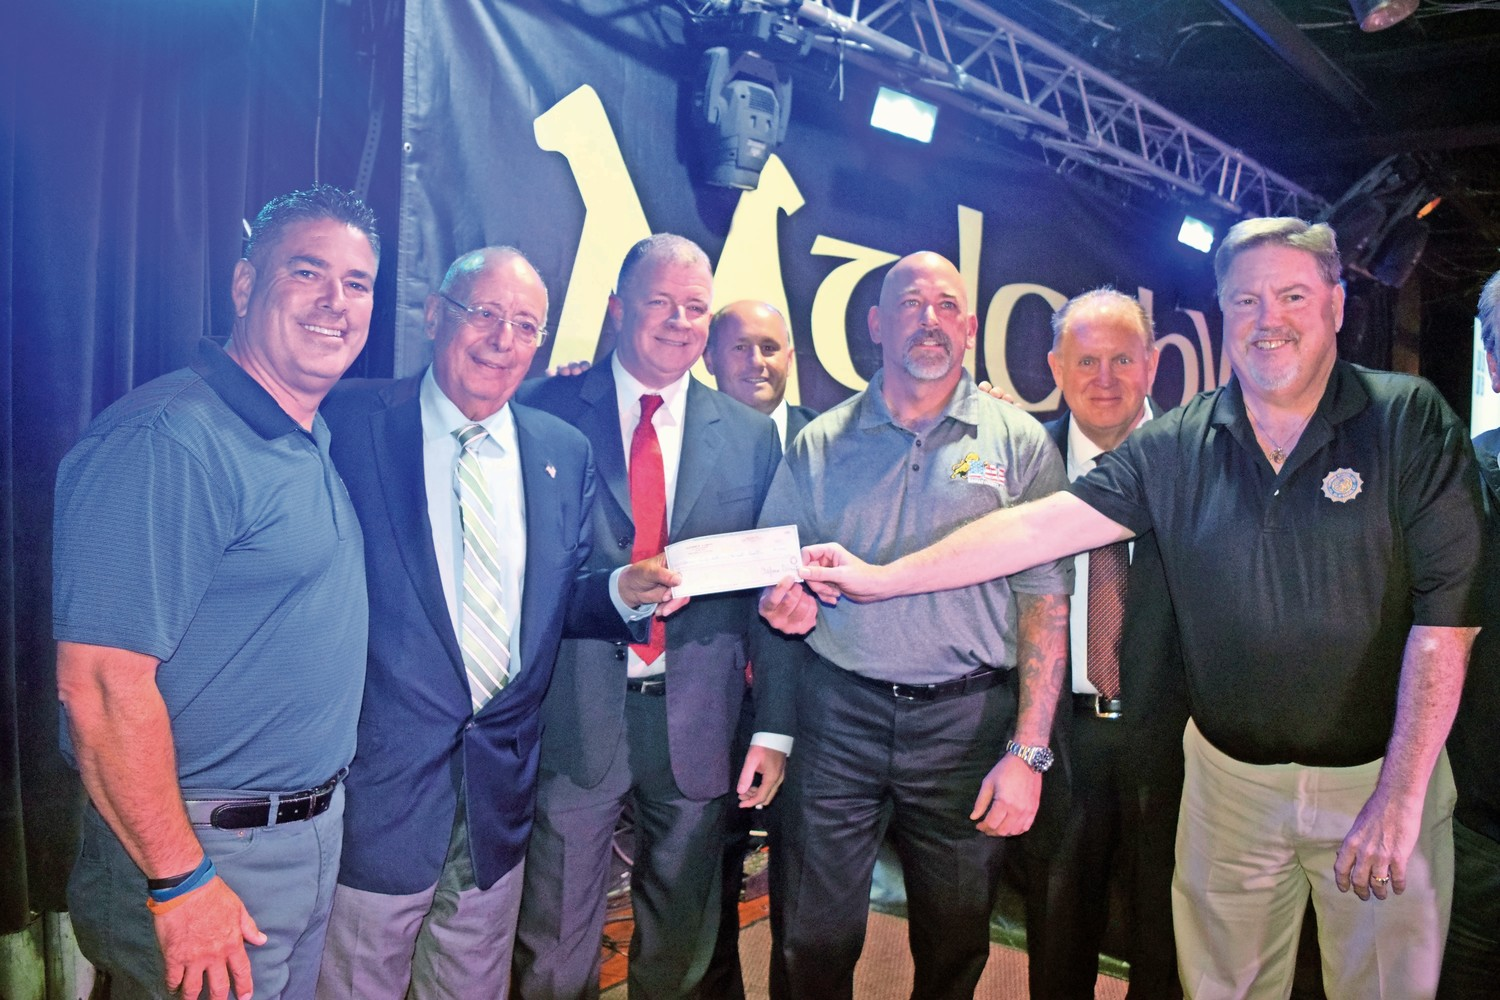 Nassau County Police unions held a fundraiser to help the victims of Hurricane Harvey at Mulcahy's Pub and Concert Hall on Sept. 6, collecting more than $120,000. From left were Nassau County PBA President James McDermott; Al D'Amato, a former U.S. senator; COBA President Brian Sullivan; Police Commissioner Patrick Ryder; DAI President John Wighaus; John Murray, the owner of Mulcahy's; and SOA President Kevin Black announced that D'Amato donated $50,000.